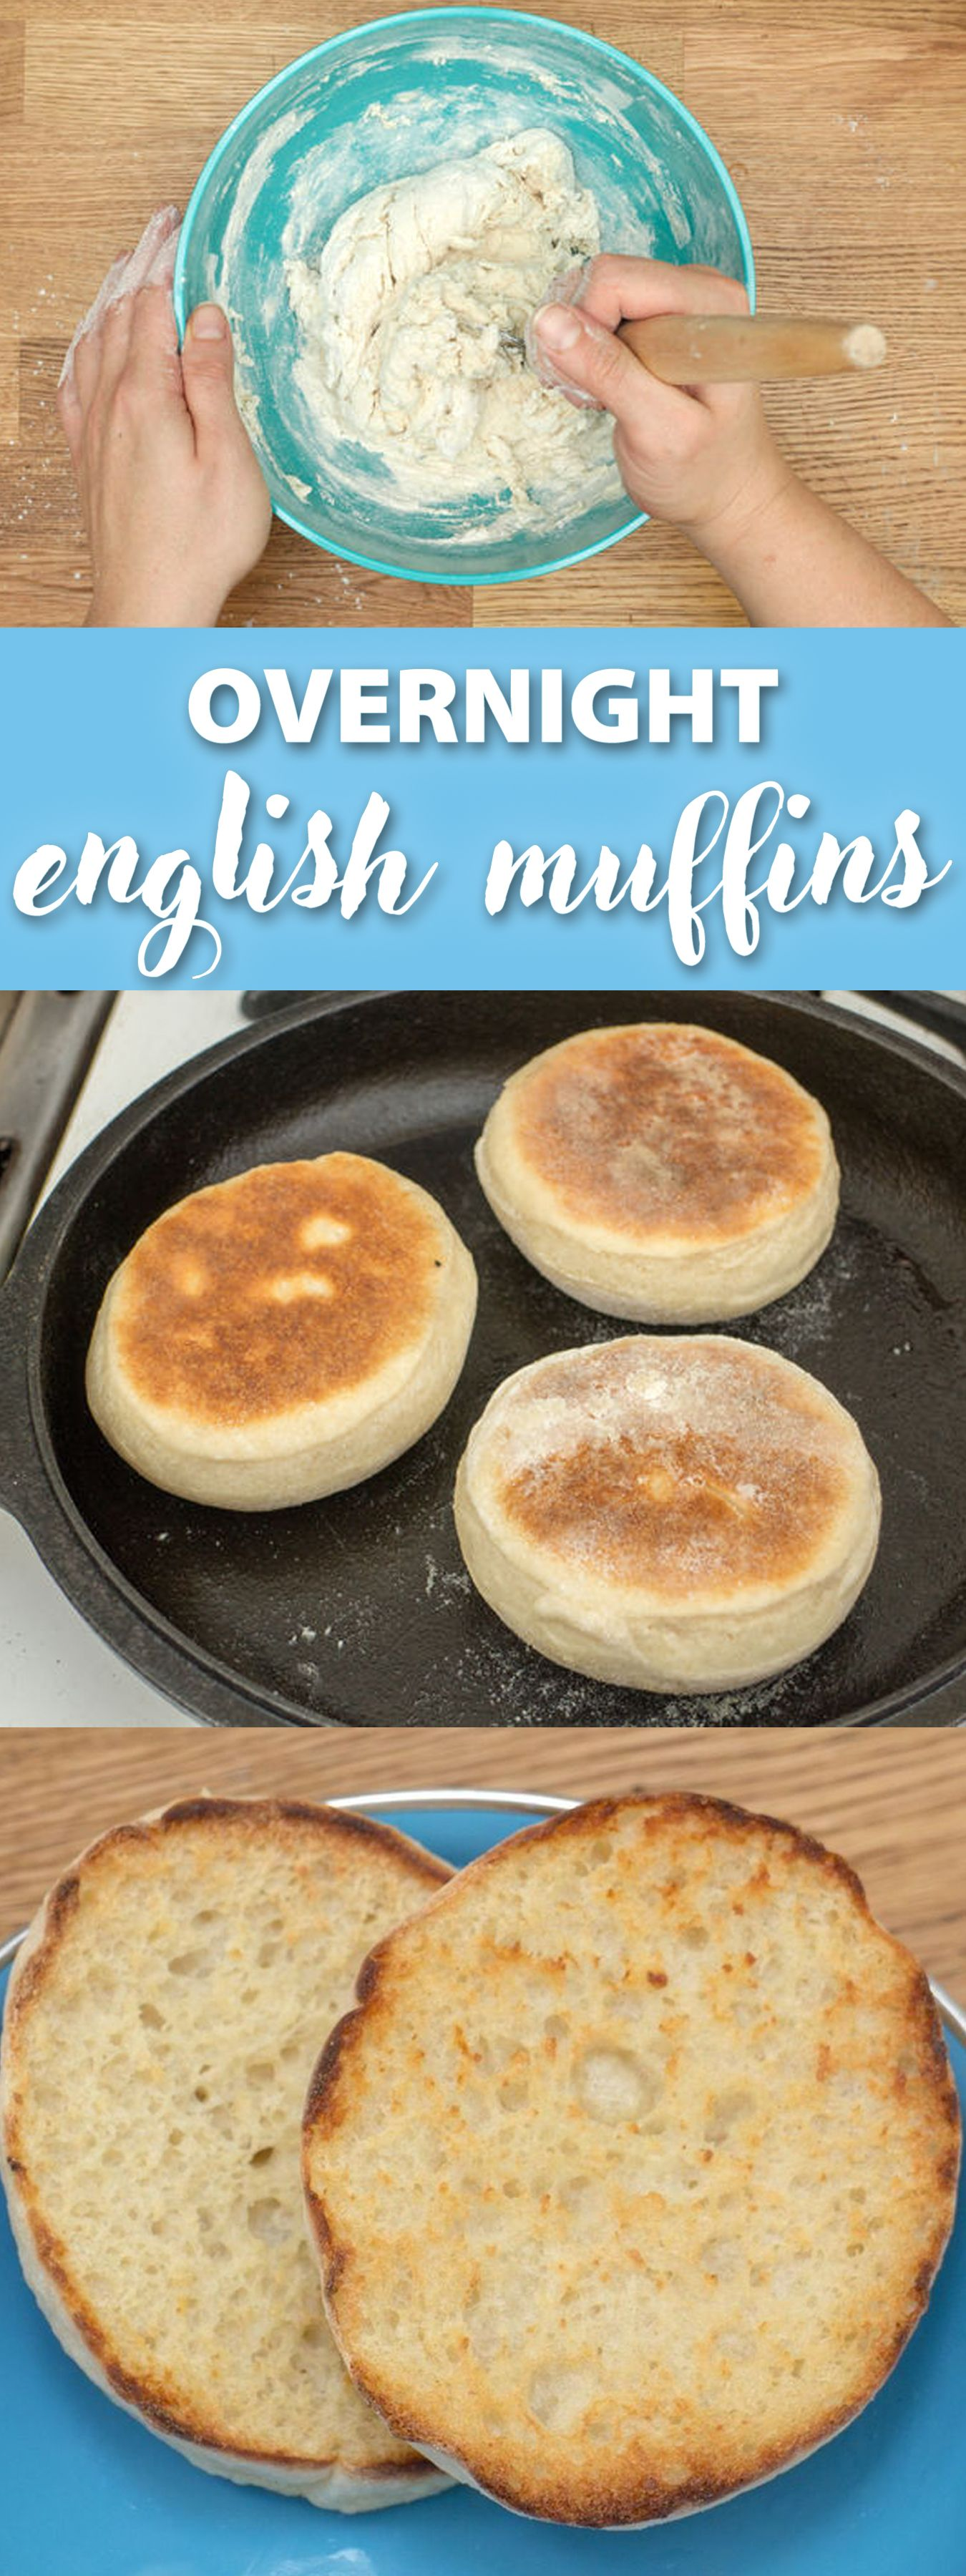 Easy overnight english muffin recipe food recipes and food ideas easy overnight english muffin recipe forumfinder Images